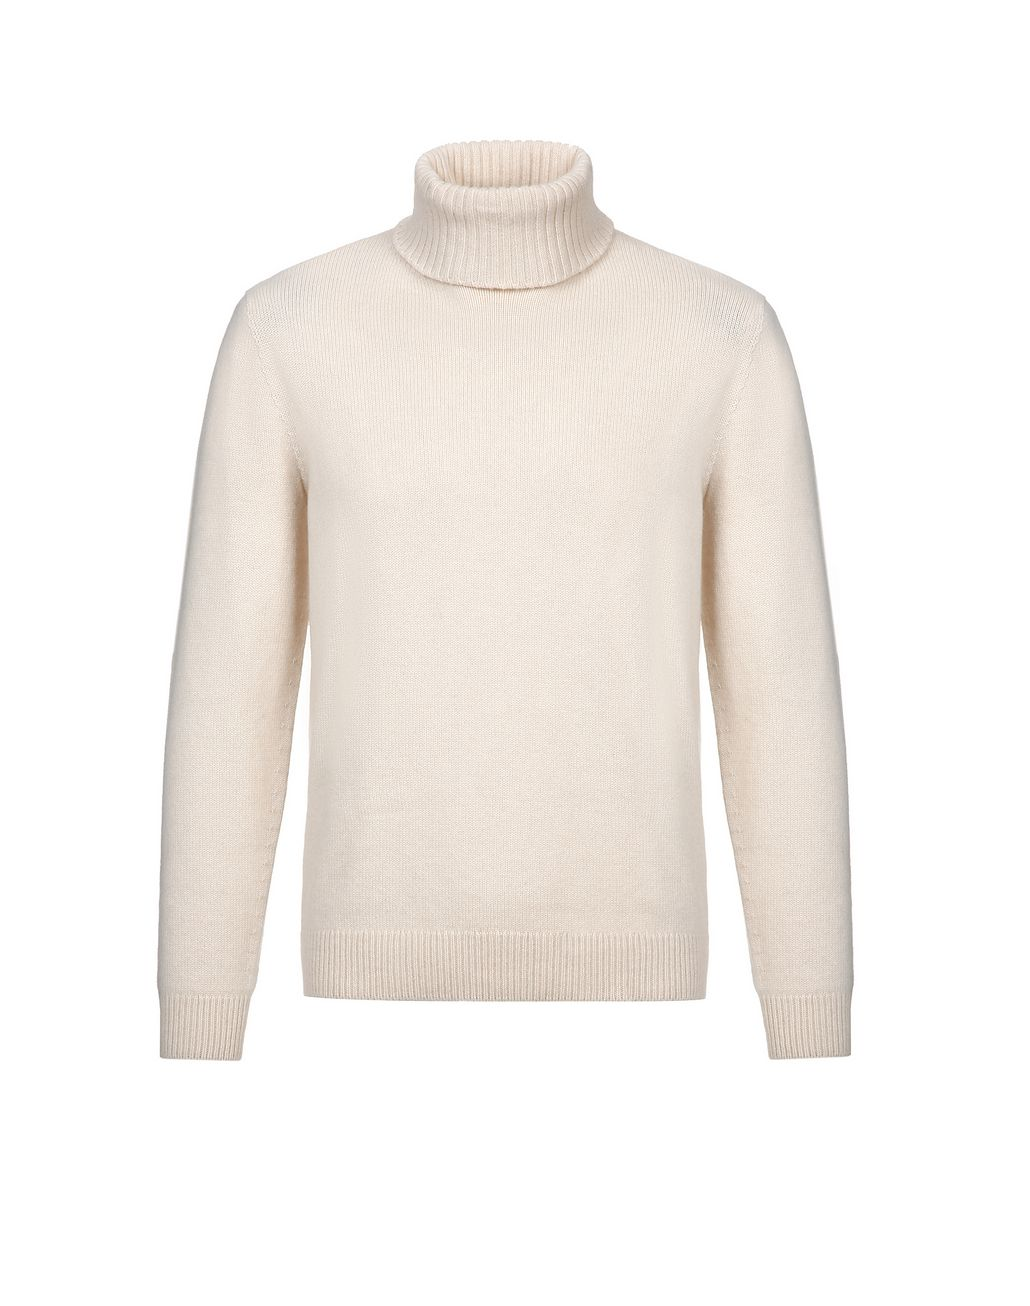 BRIONI White Turtleneck Sweater Knitwear Man f